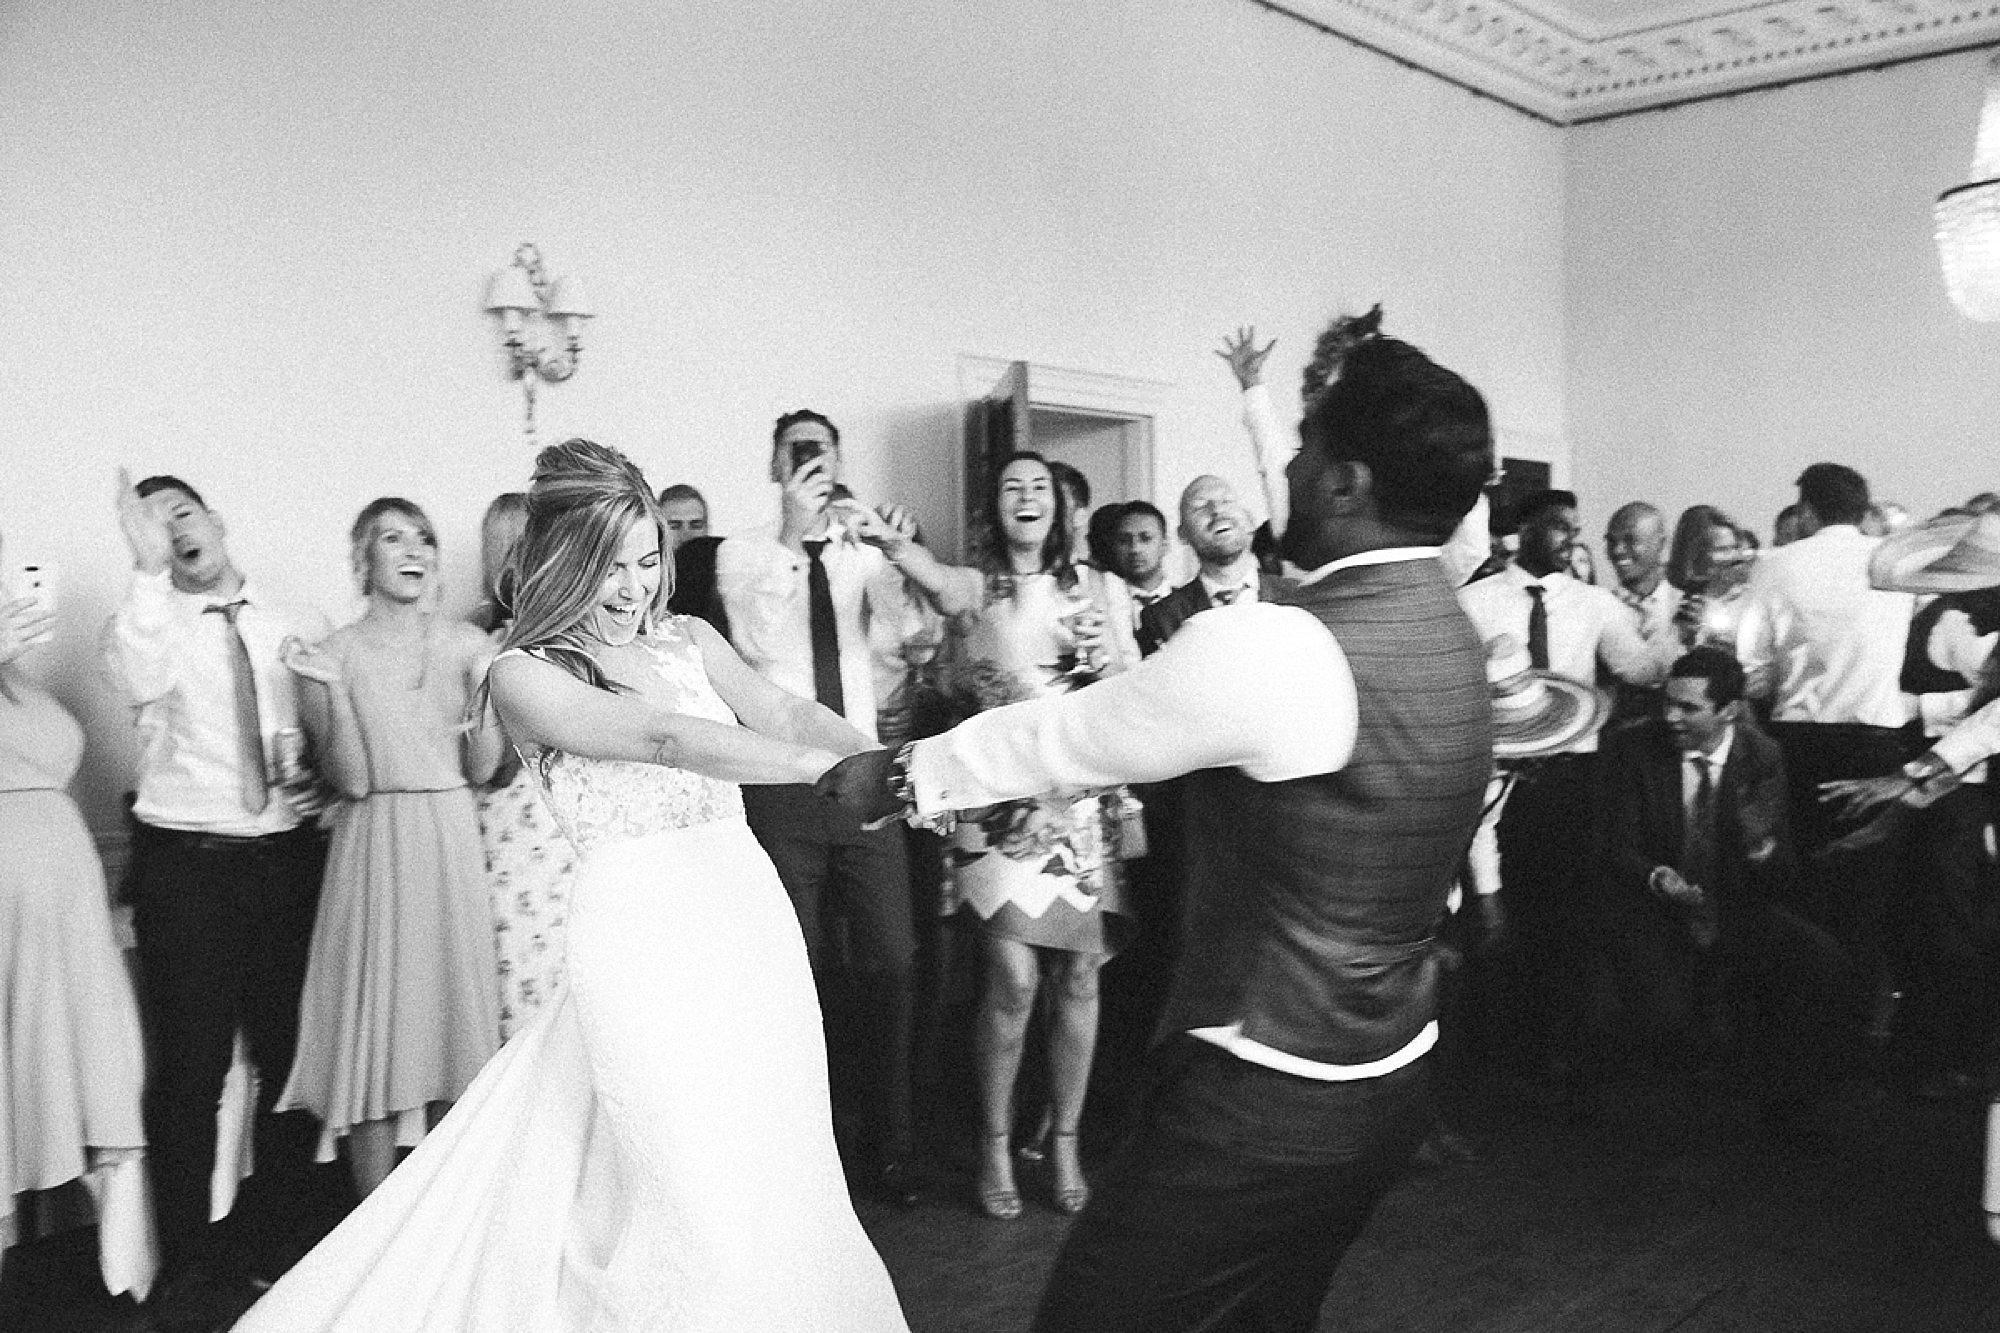 bride and groom dance at Pynes house wedding in black and white